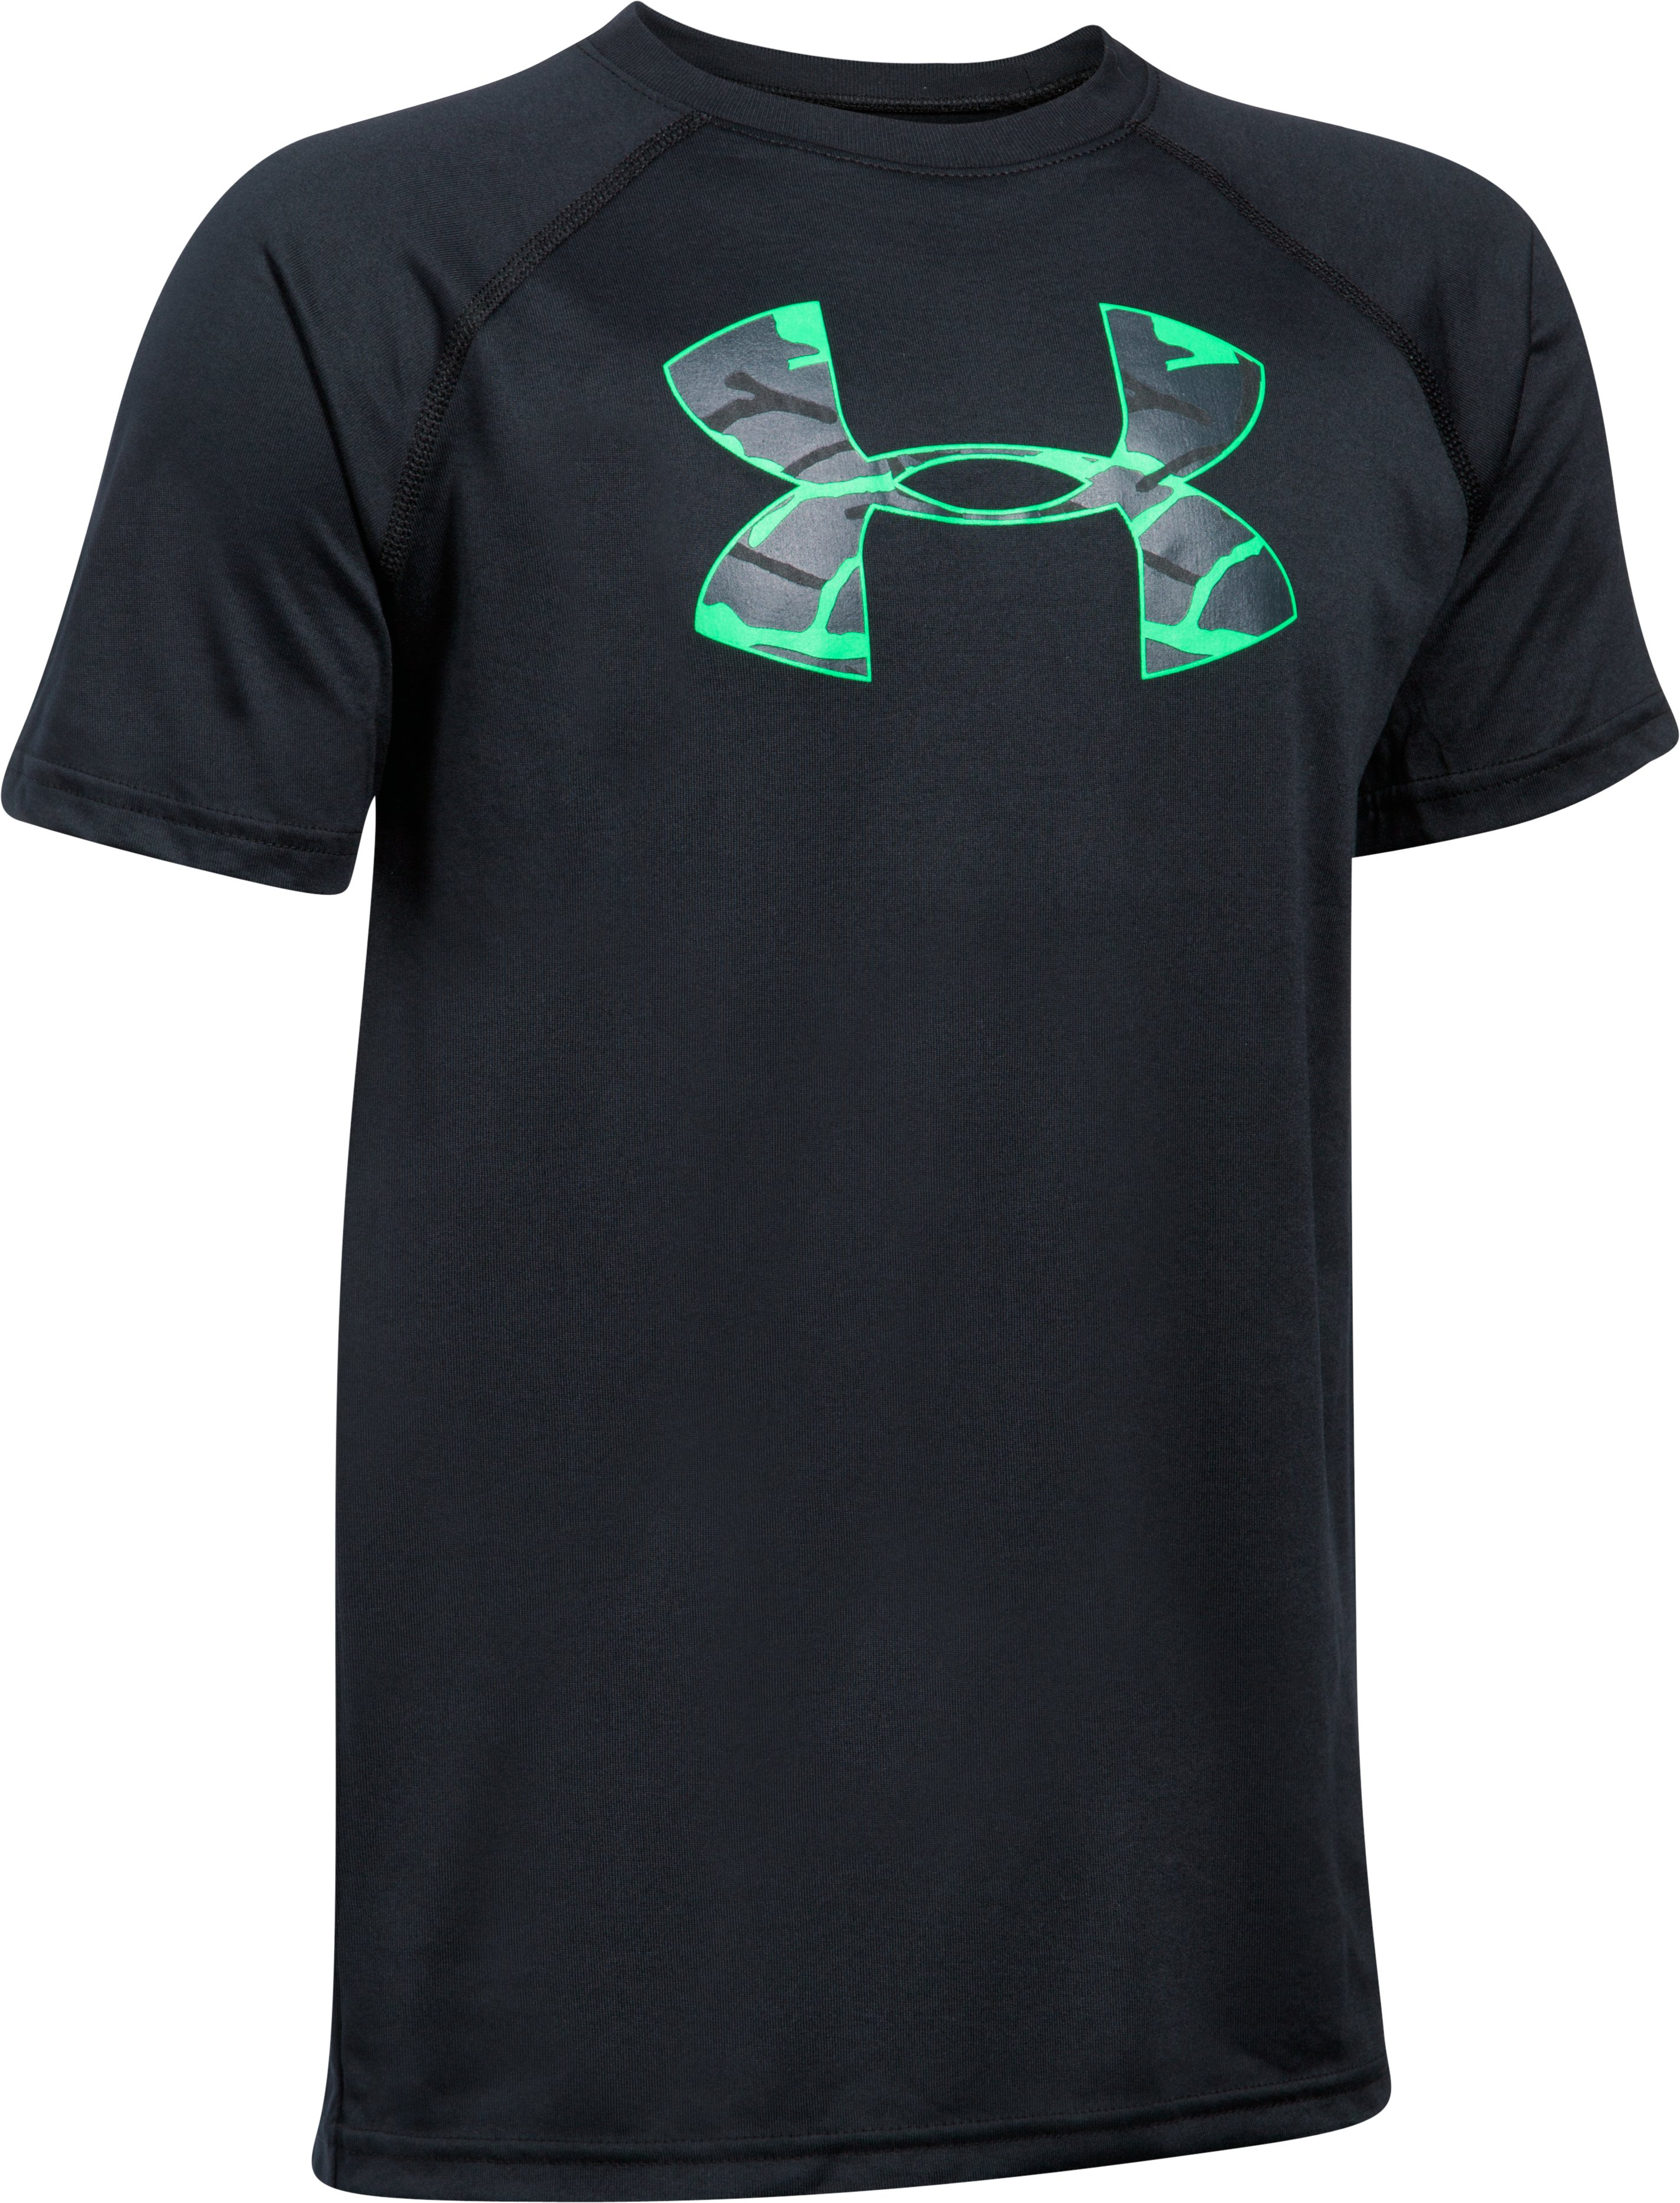 Boys' UA Tech Big Logo T-Shirt, Black